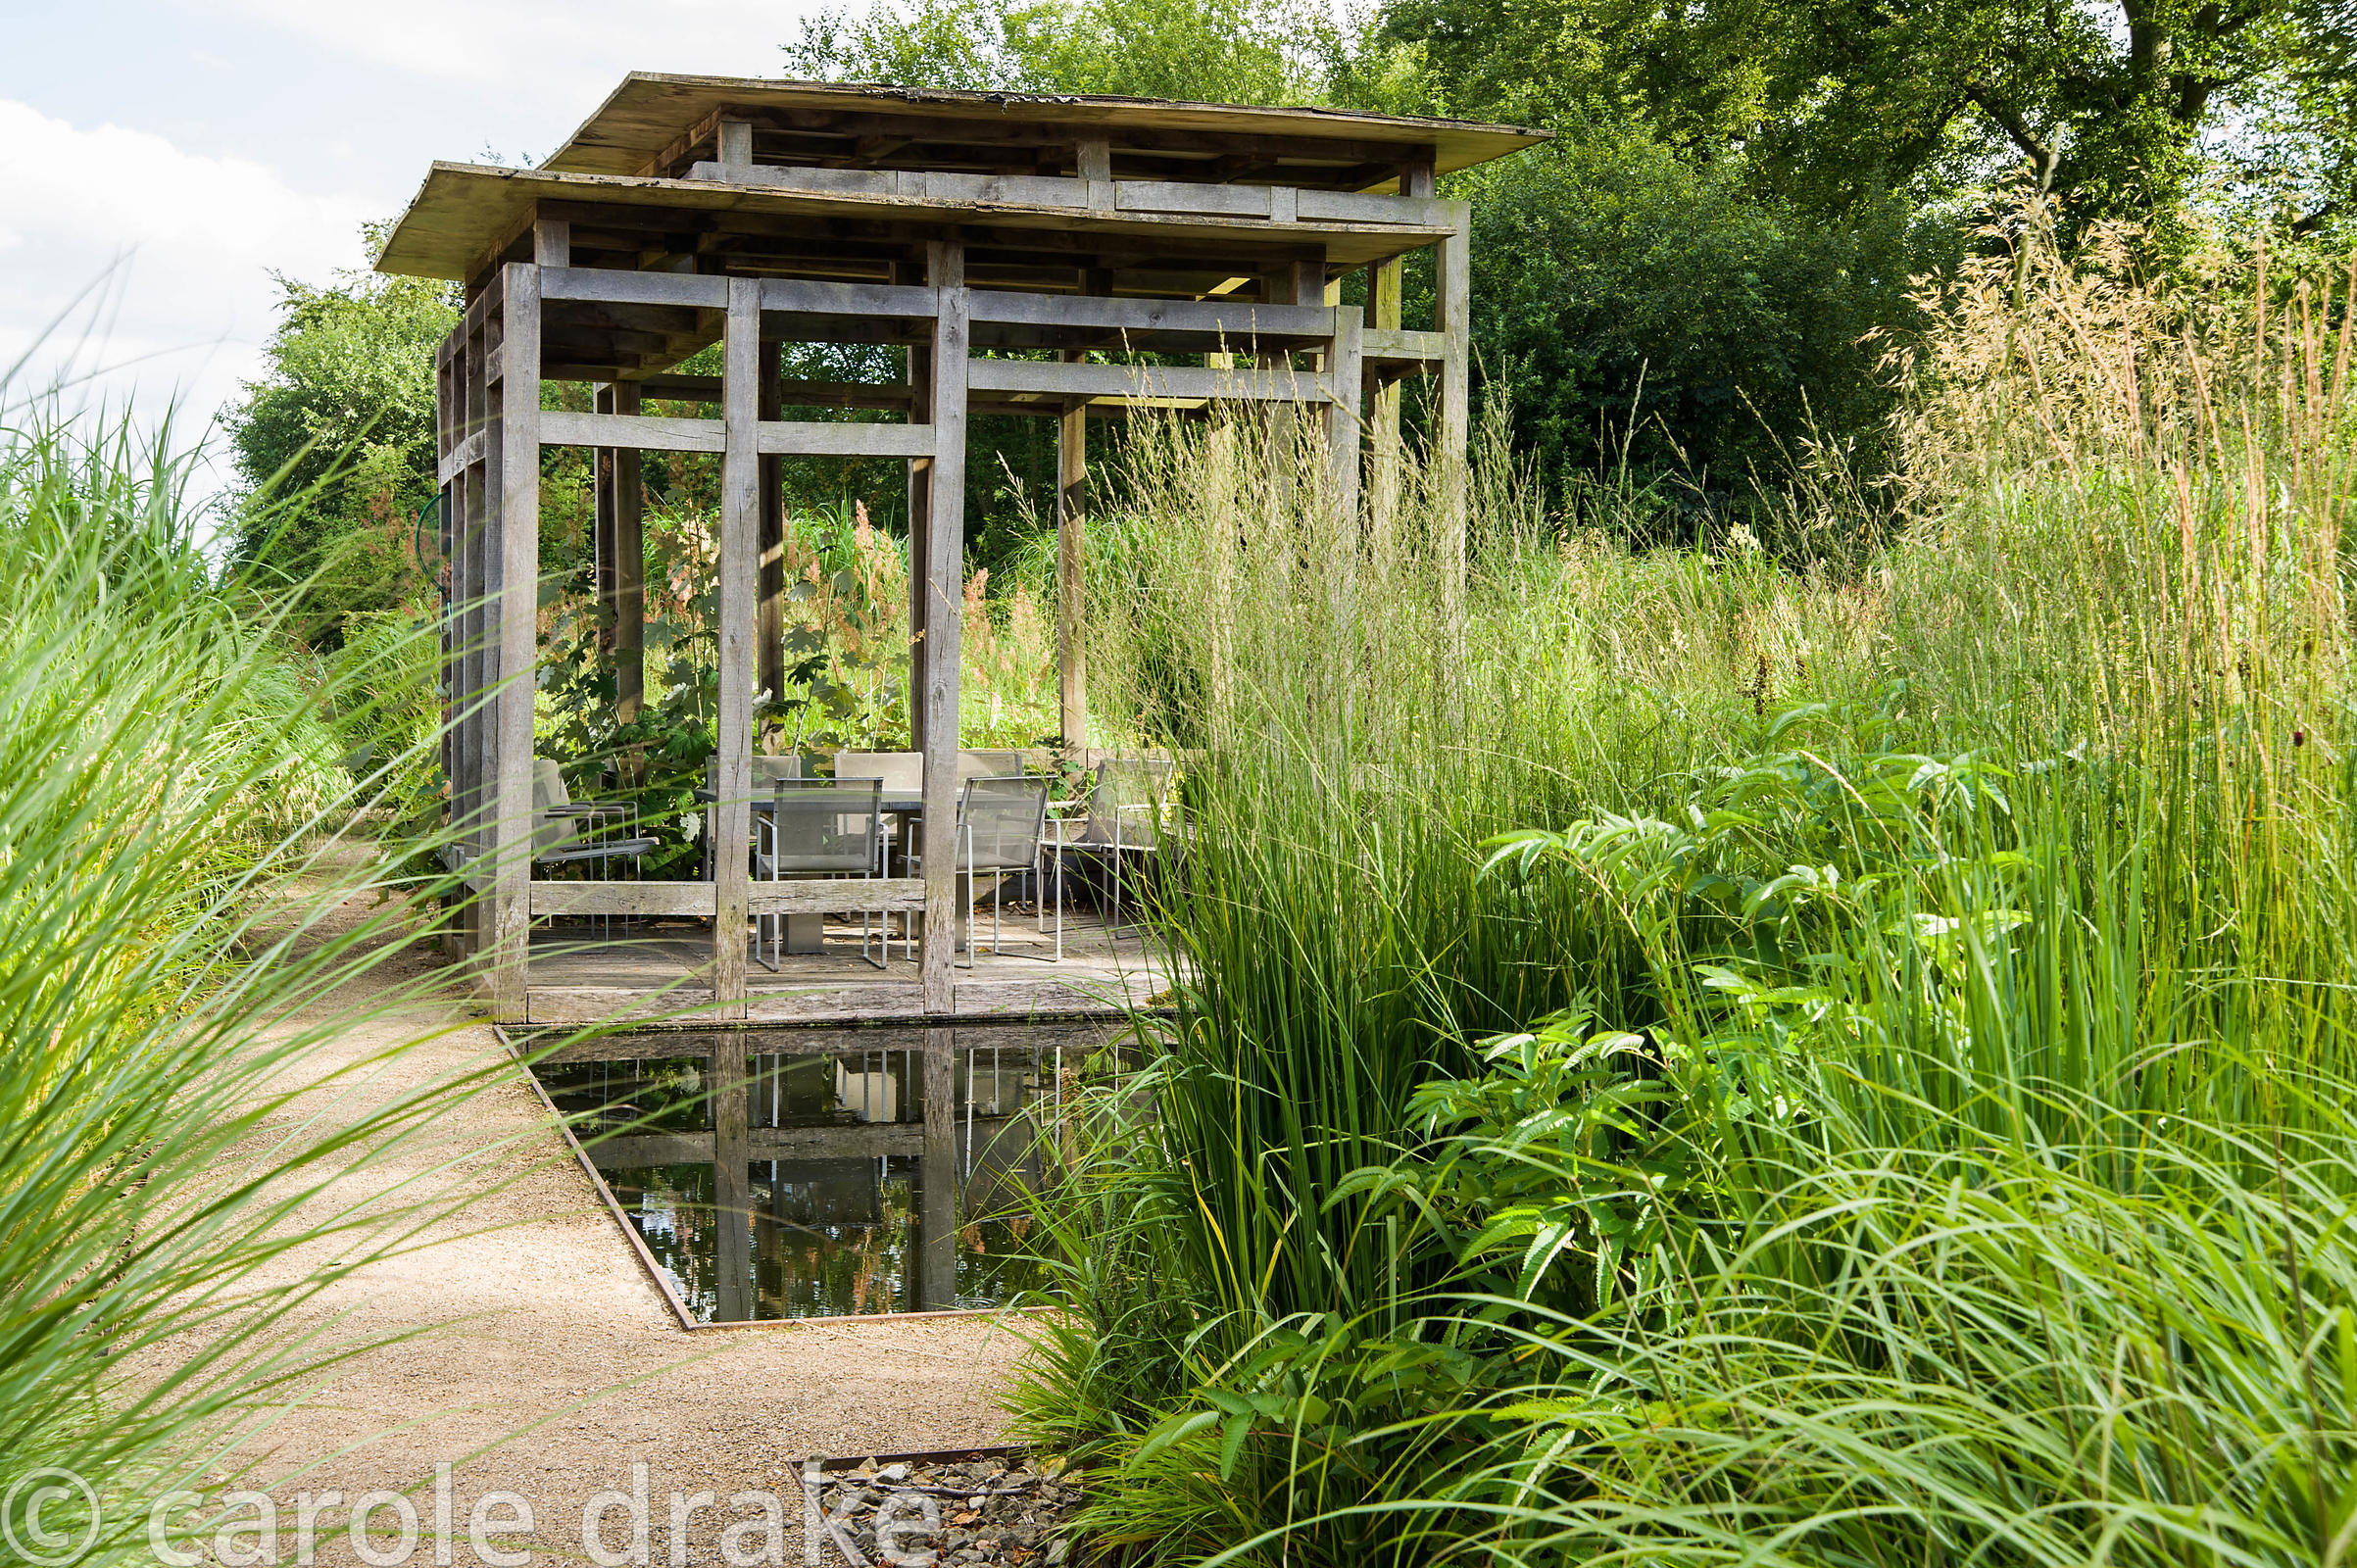 Carole Drake At The Centre Of The Minimalist Front Garden Designed By Christopher Bradley Hole Is A Contemporary Green Oak Summerhouse B